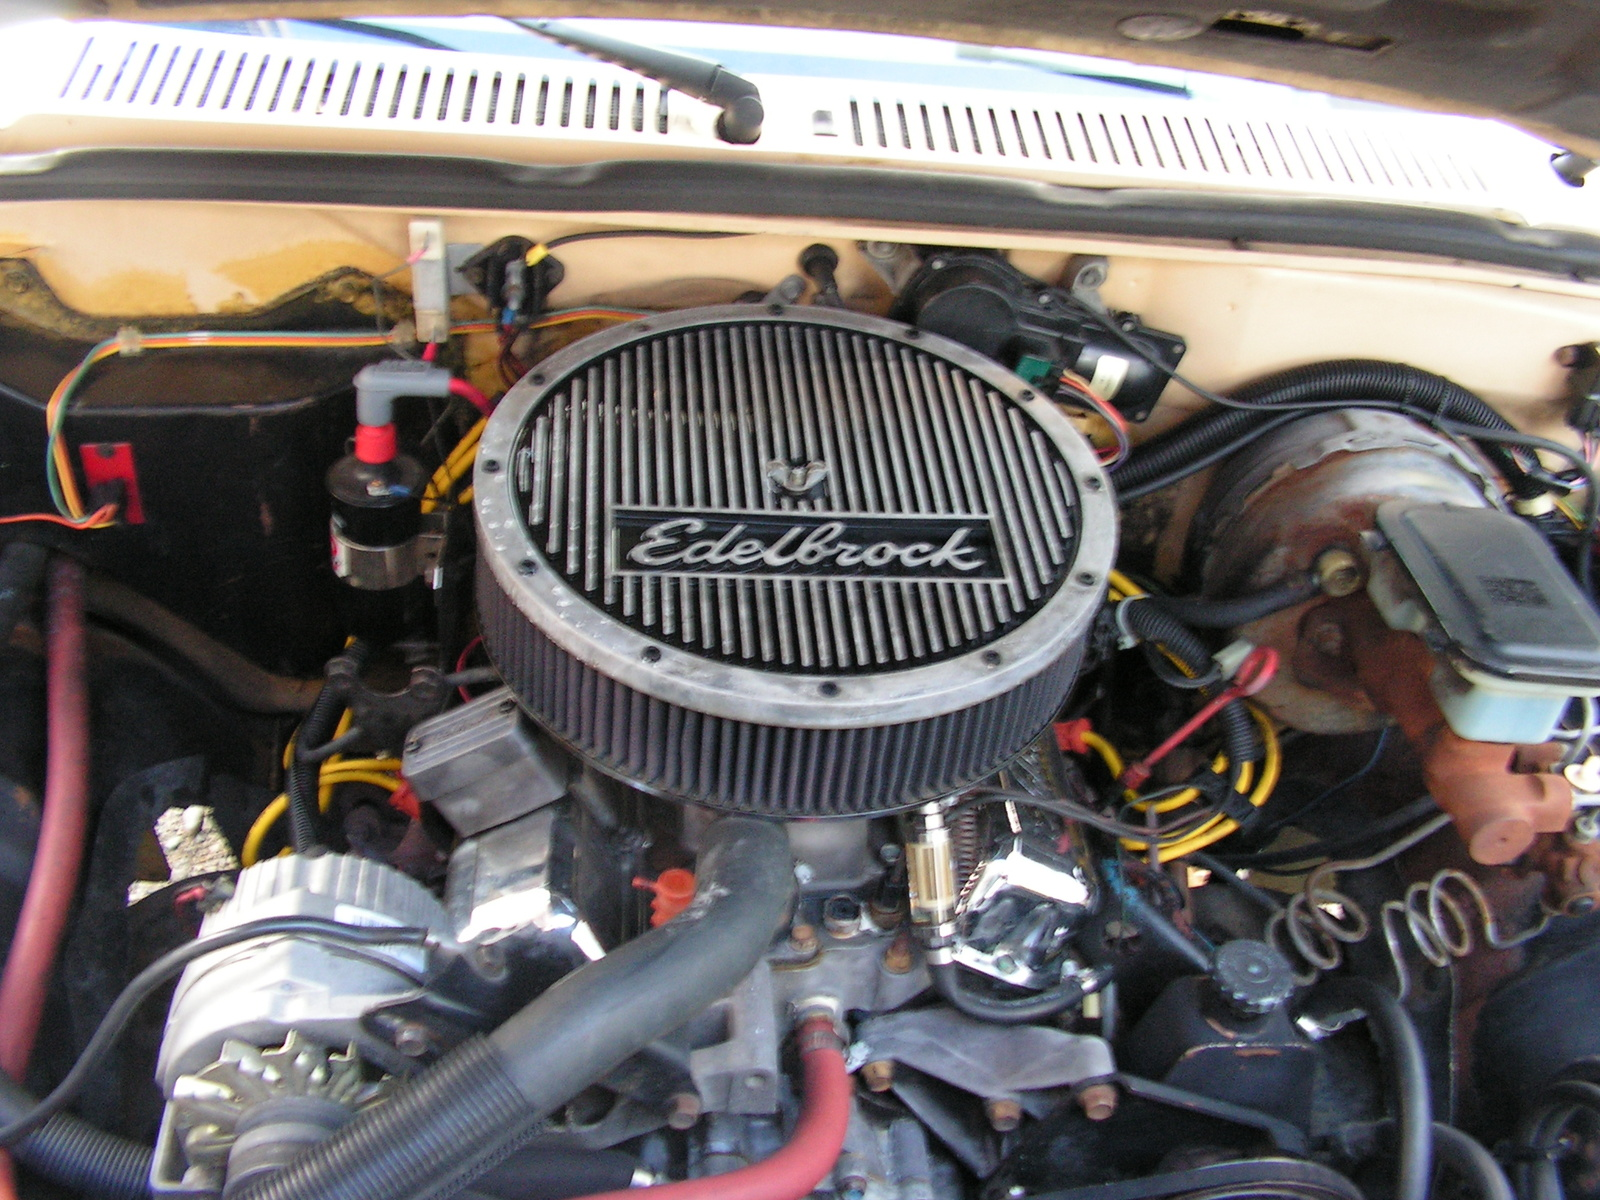 GMC S-15 engine #3